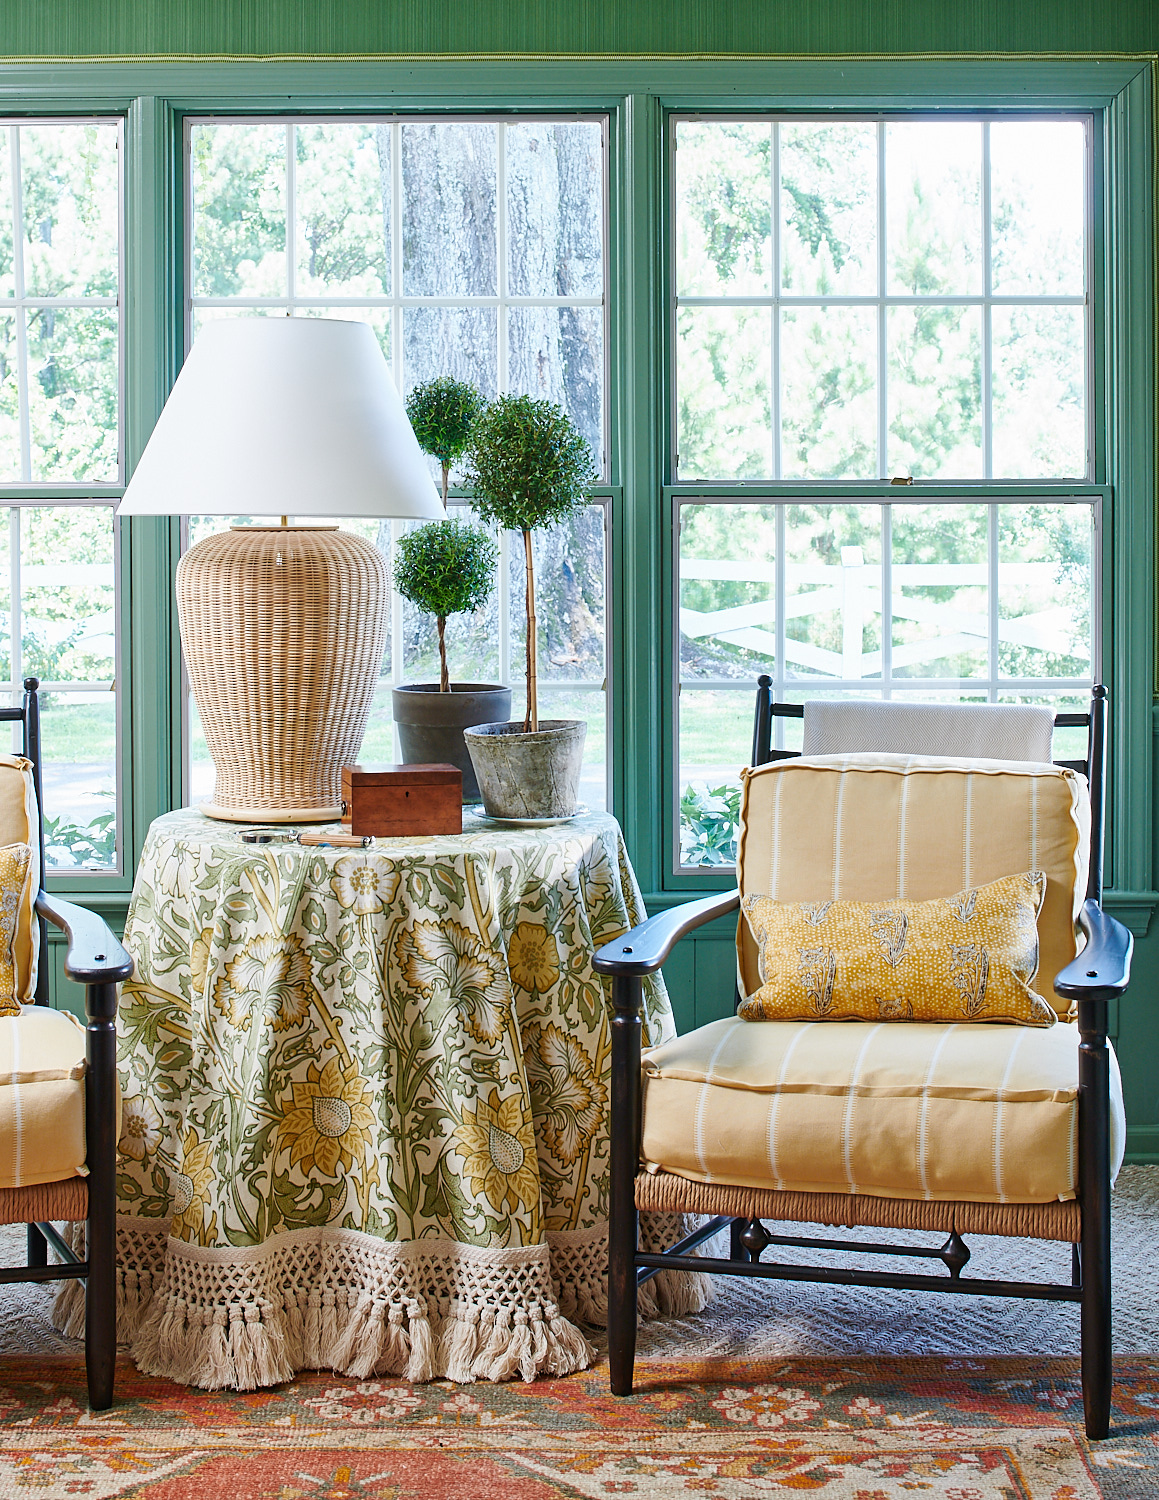 Cane wicker chairs with vertical-striped cushions and kidney pillows